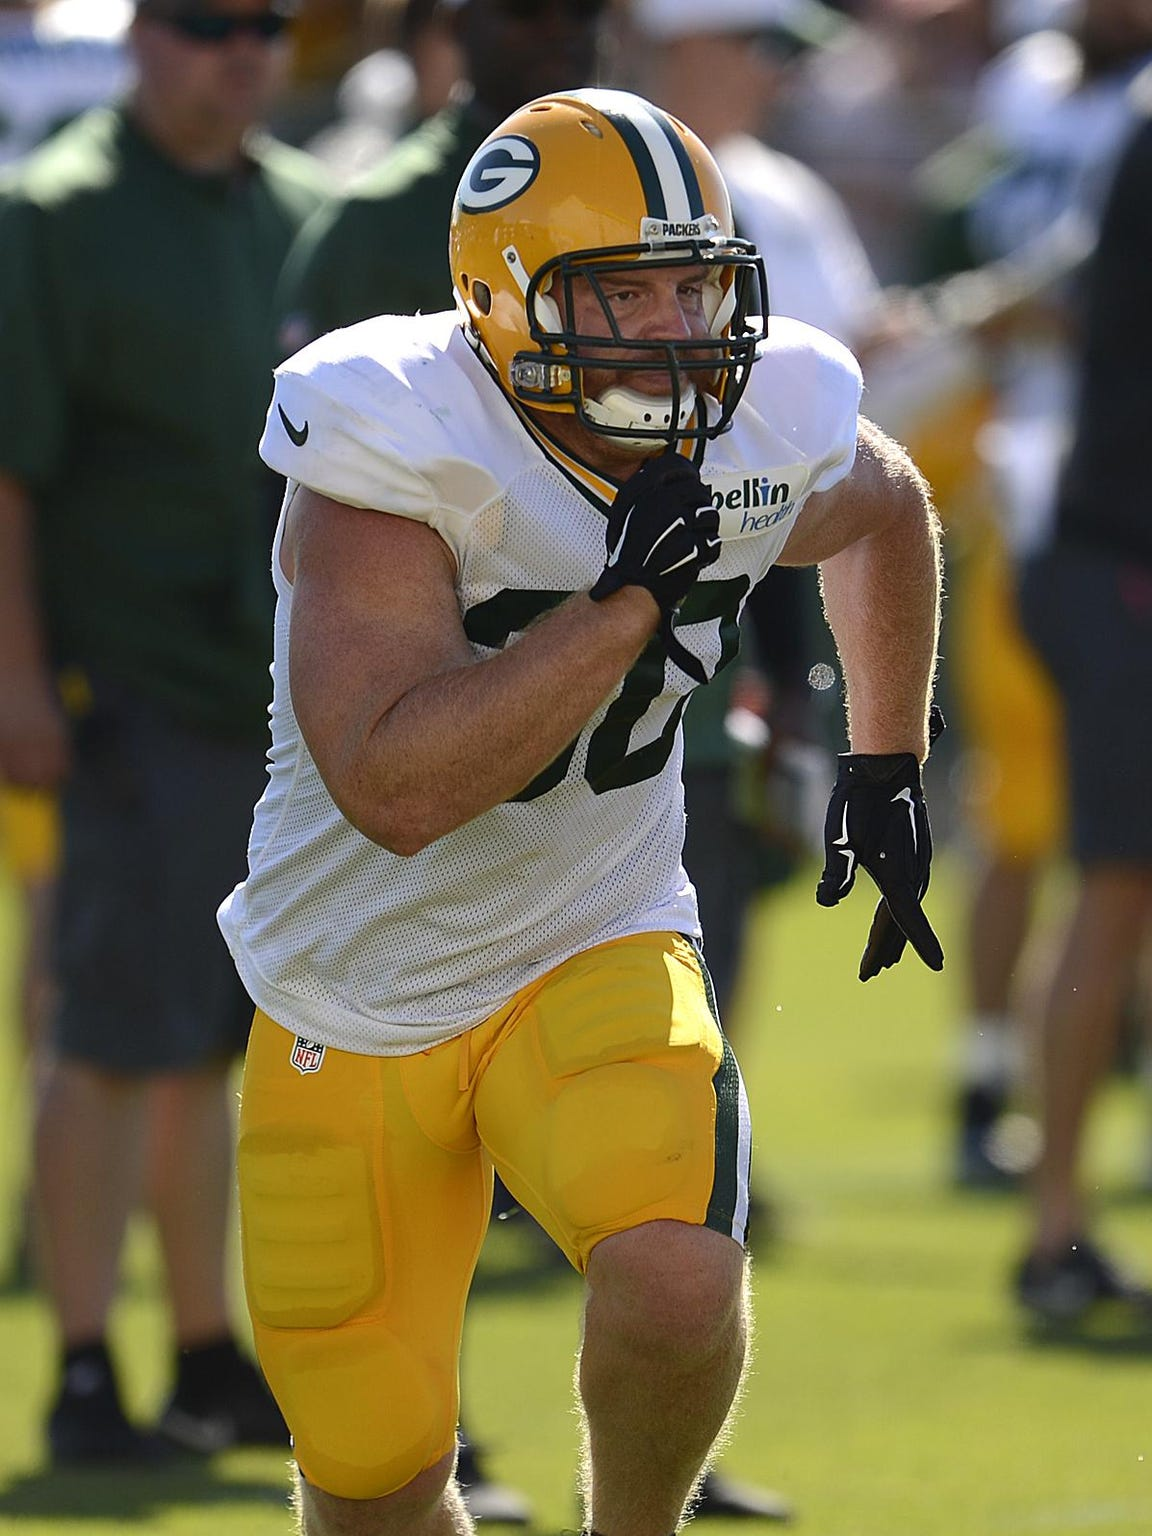 Green Bay Packers fullback John Kuhn during training